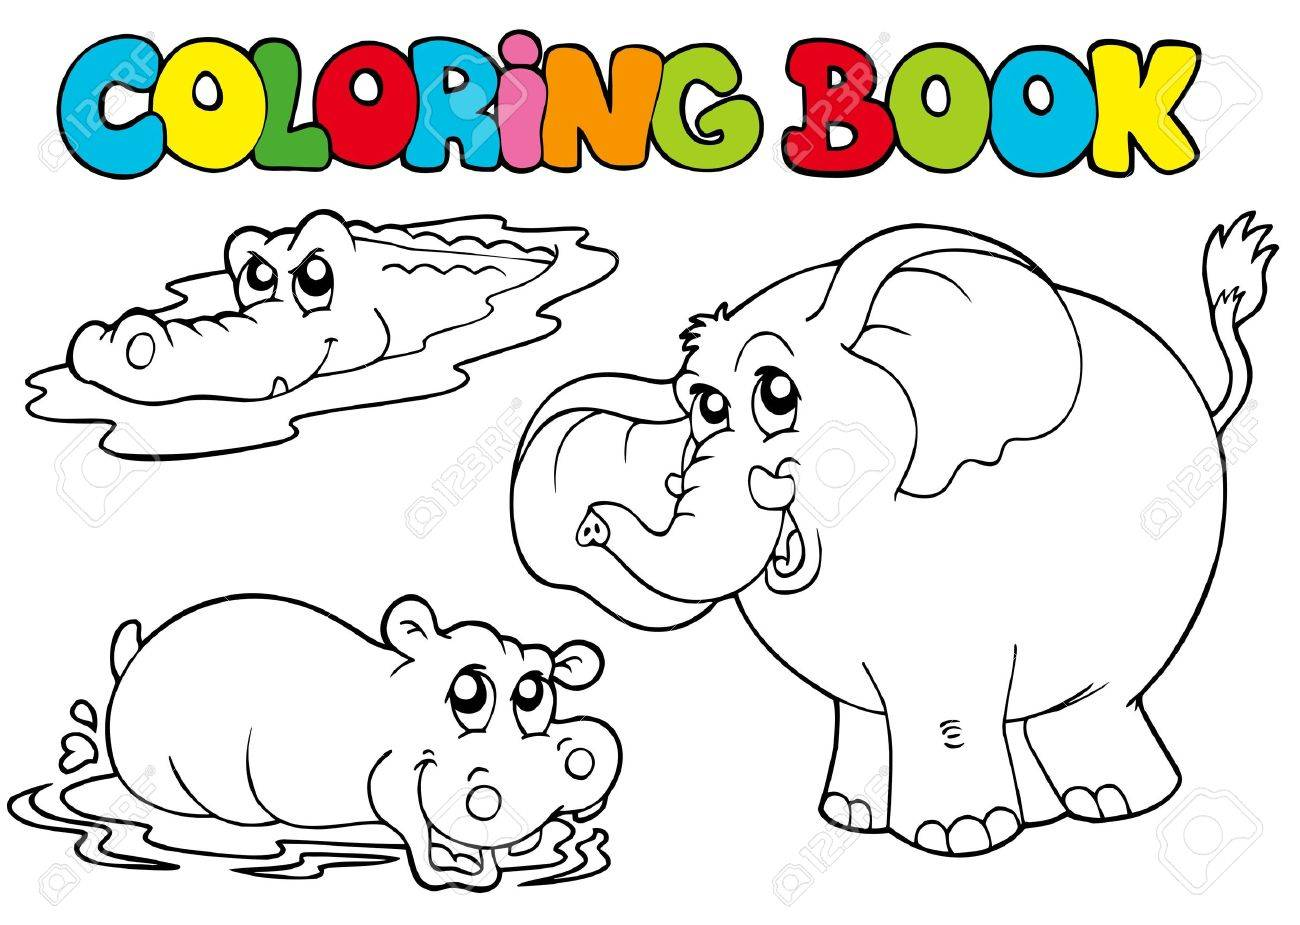 Coloring Book With Tropic Animals - Illustration. Royalty Free ...